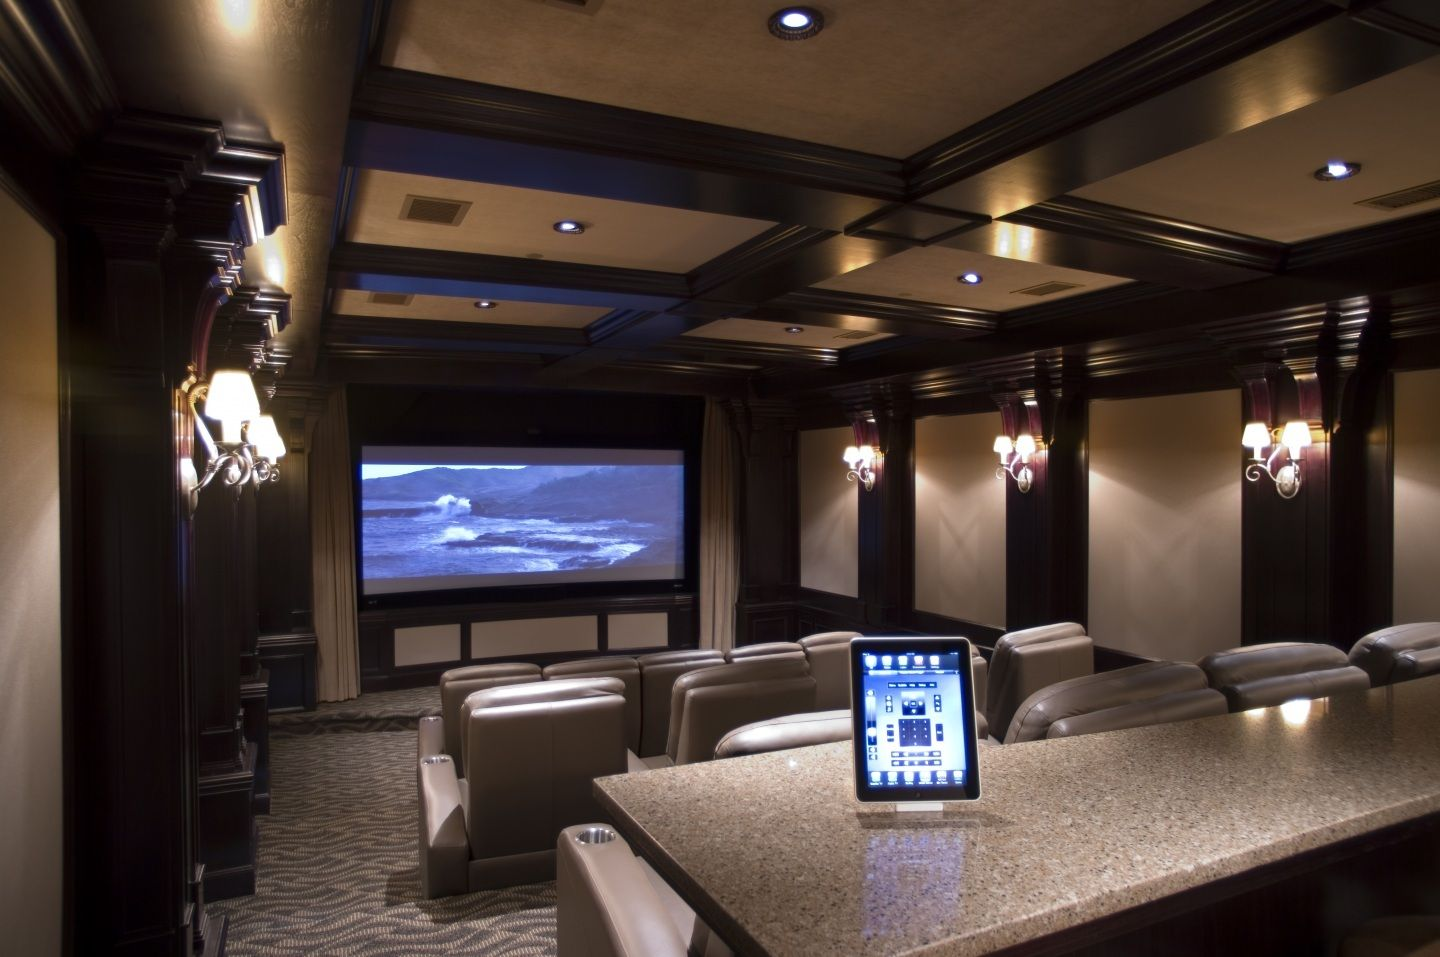 Best Kitchen Gallery: Home Theater Room Decorating Ideas Google Search Visionary Home of Home Theater Design Houston  on rachelxblog.com